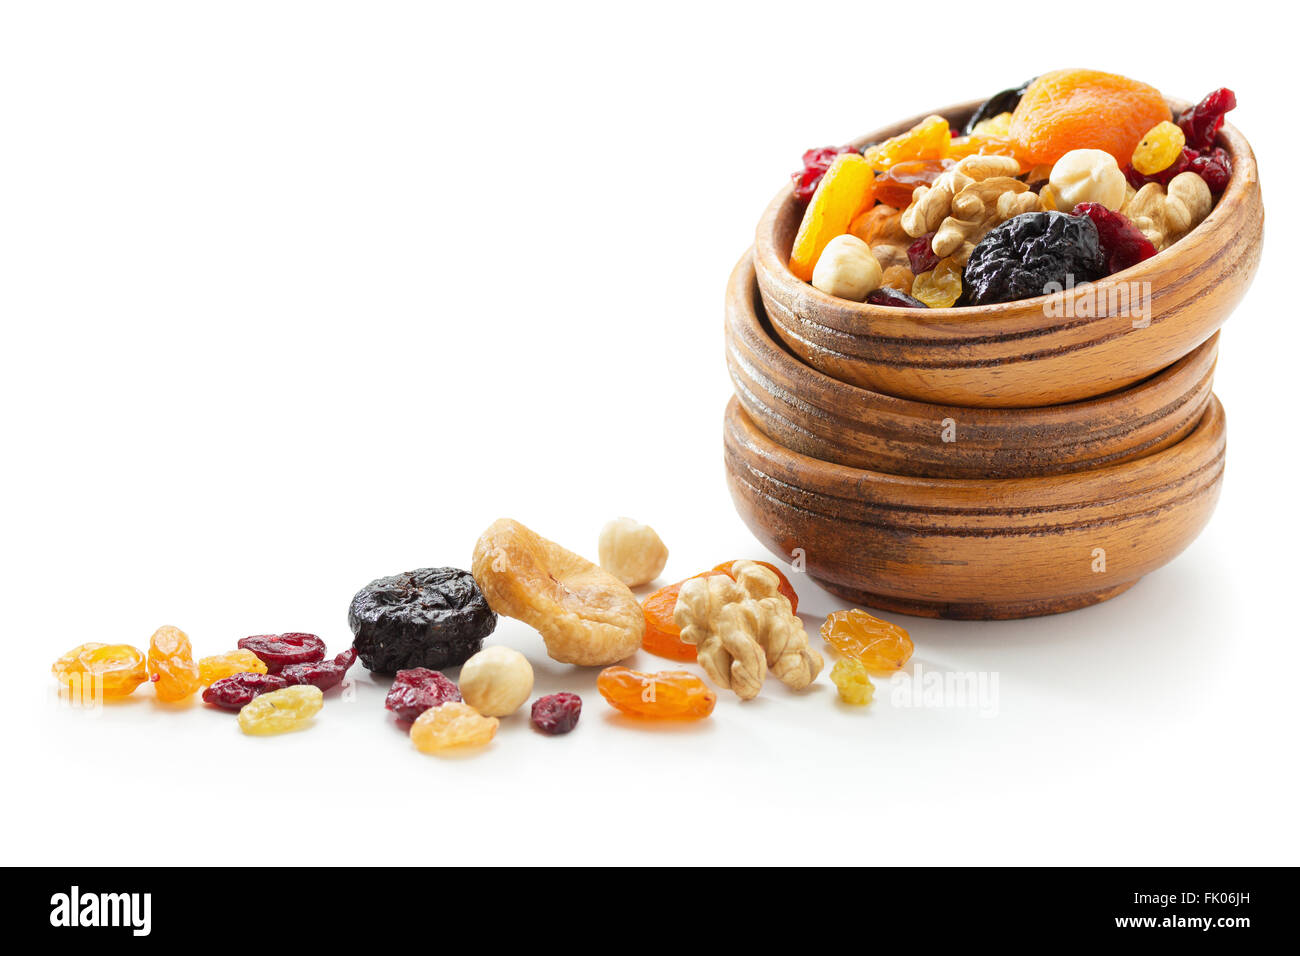 Assorted dried fruits and nuts - Stock Image